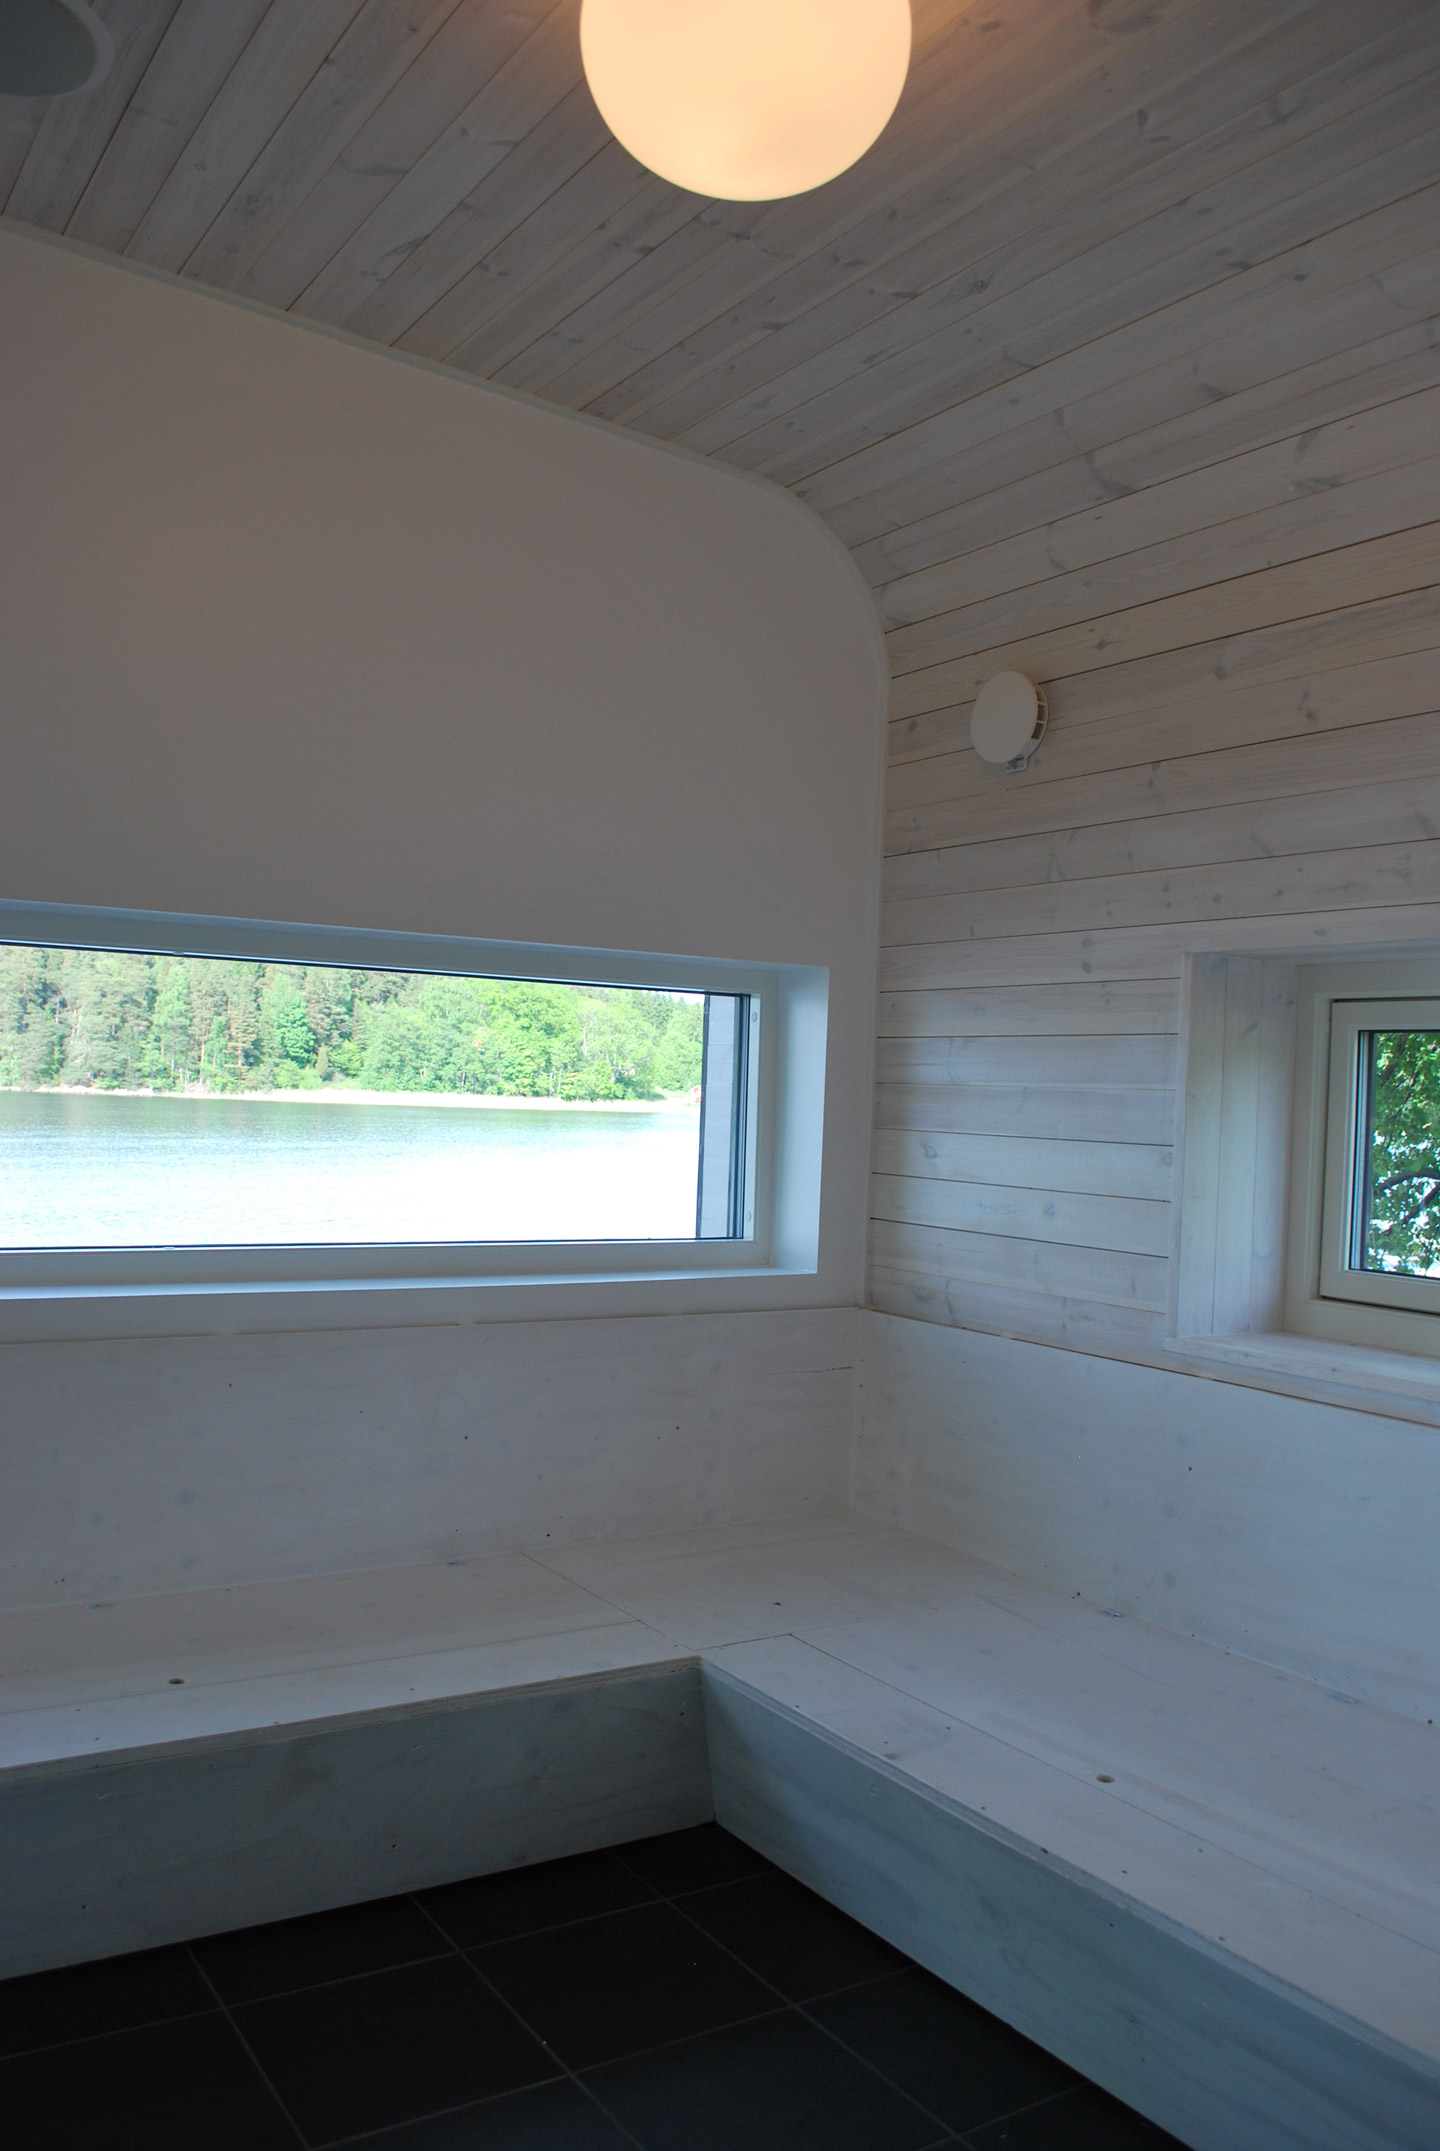 Private sauna bilder